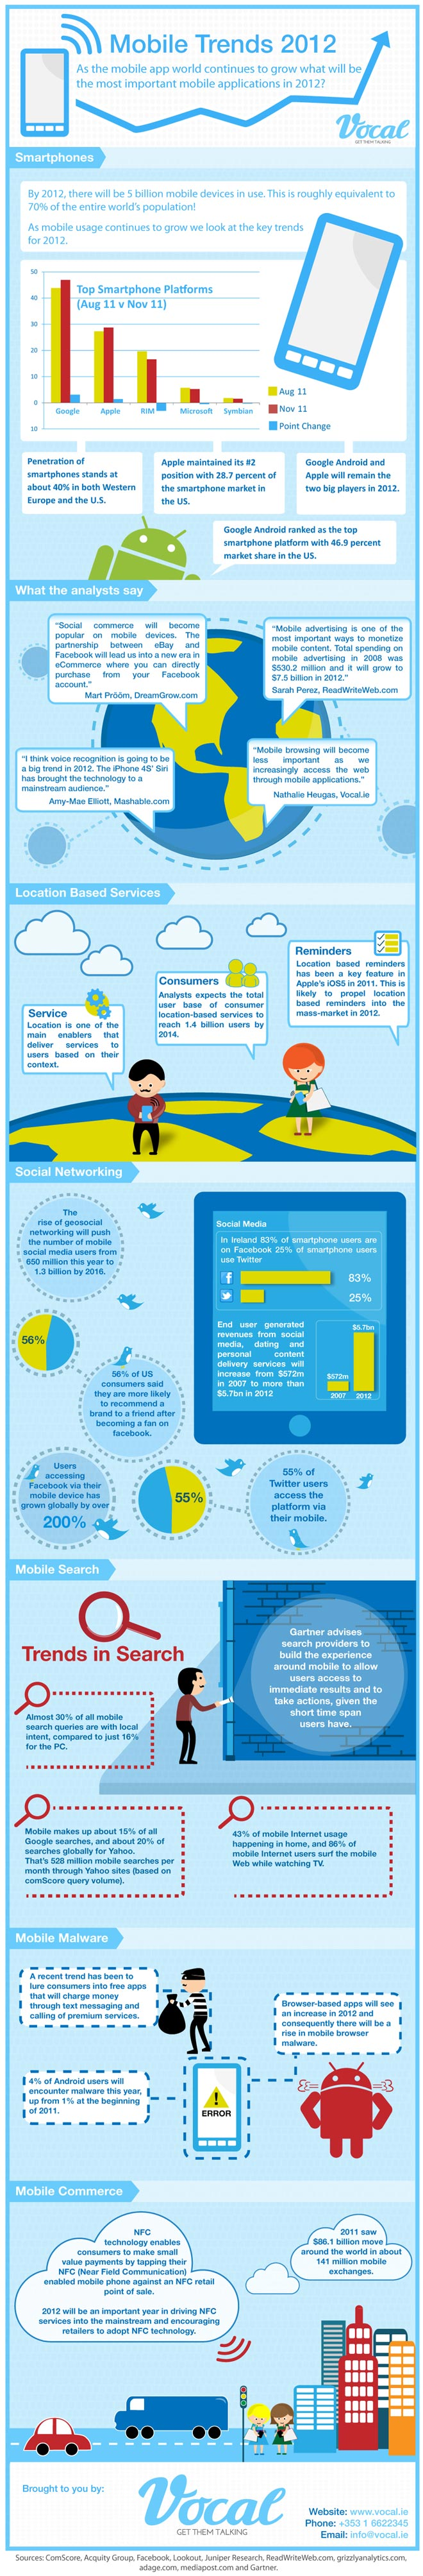 Mobile Trends for 2012